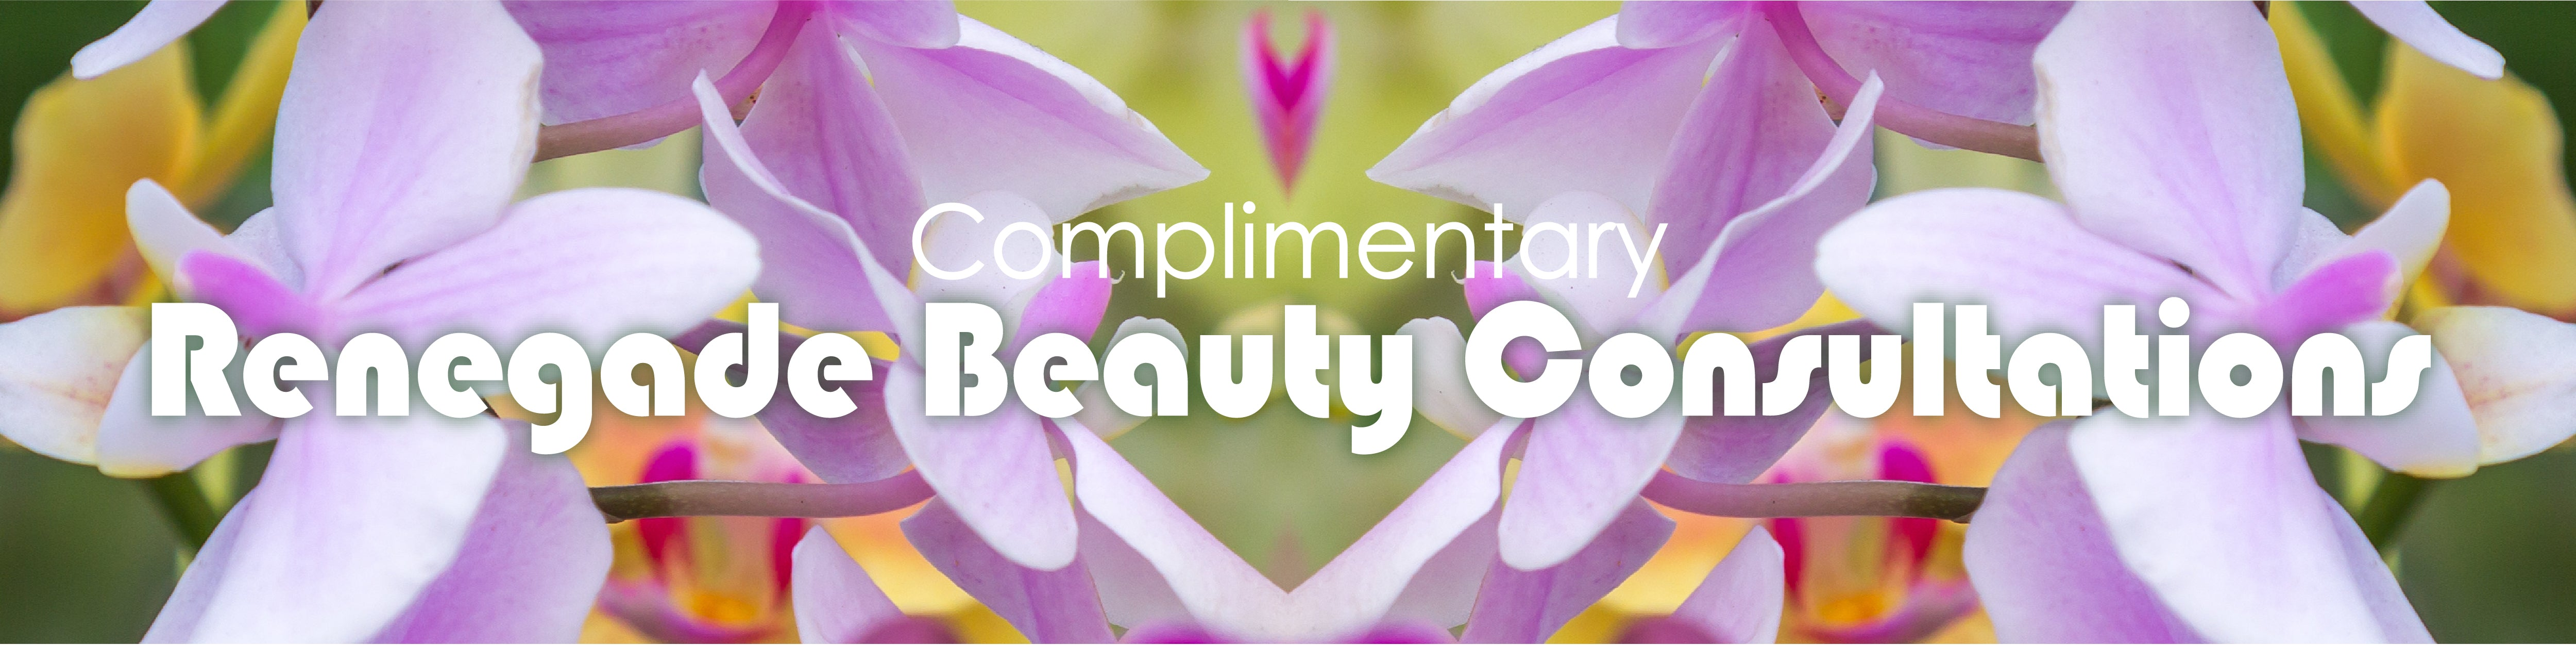 Renegade Beauty Consultations